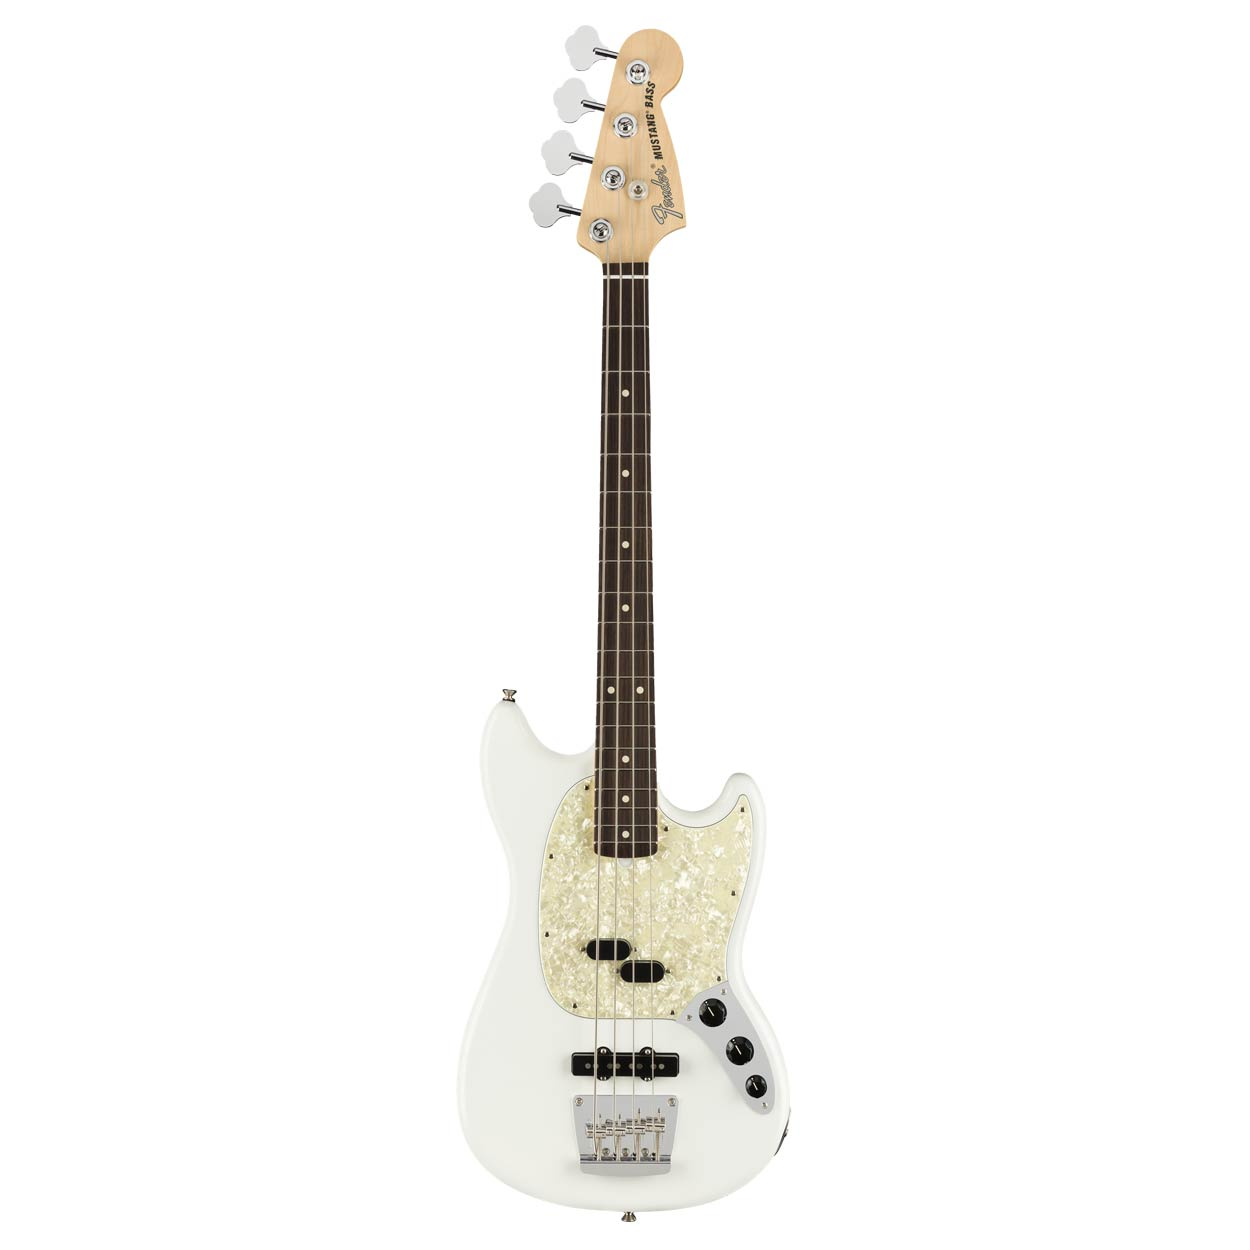 Fender American Performer Mustang Bass RW AWT - Bajo eléctrico